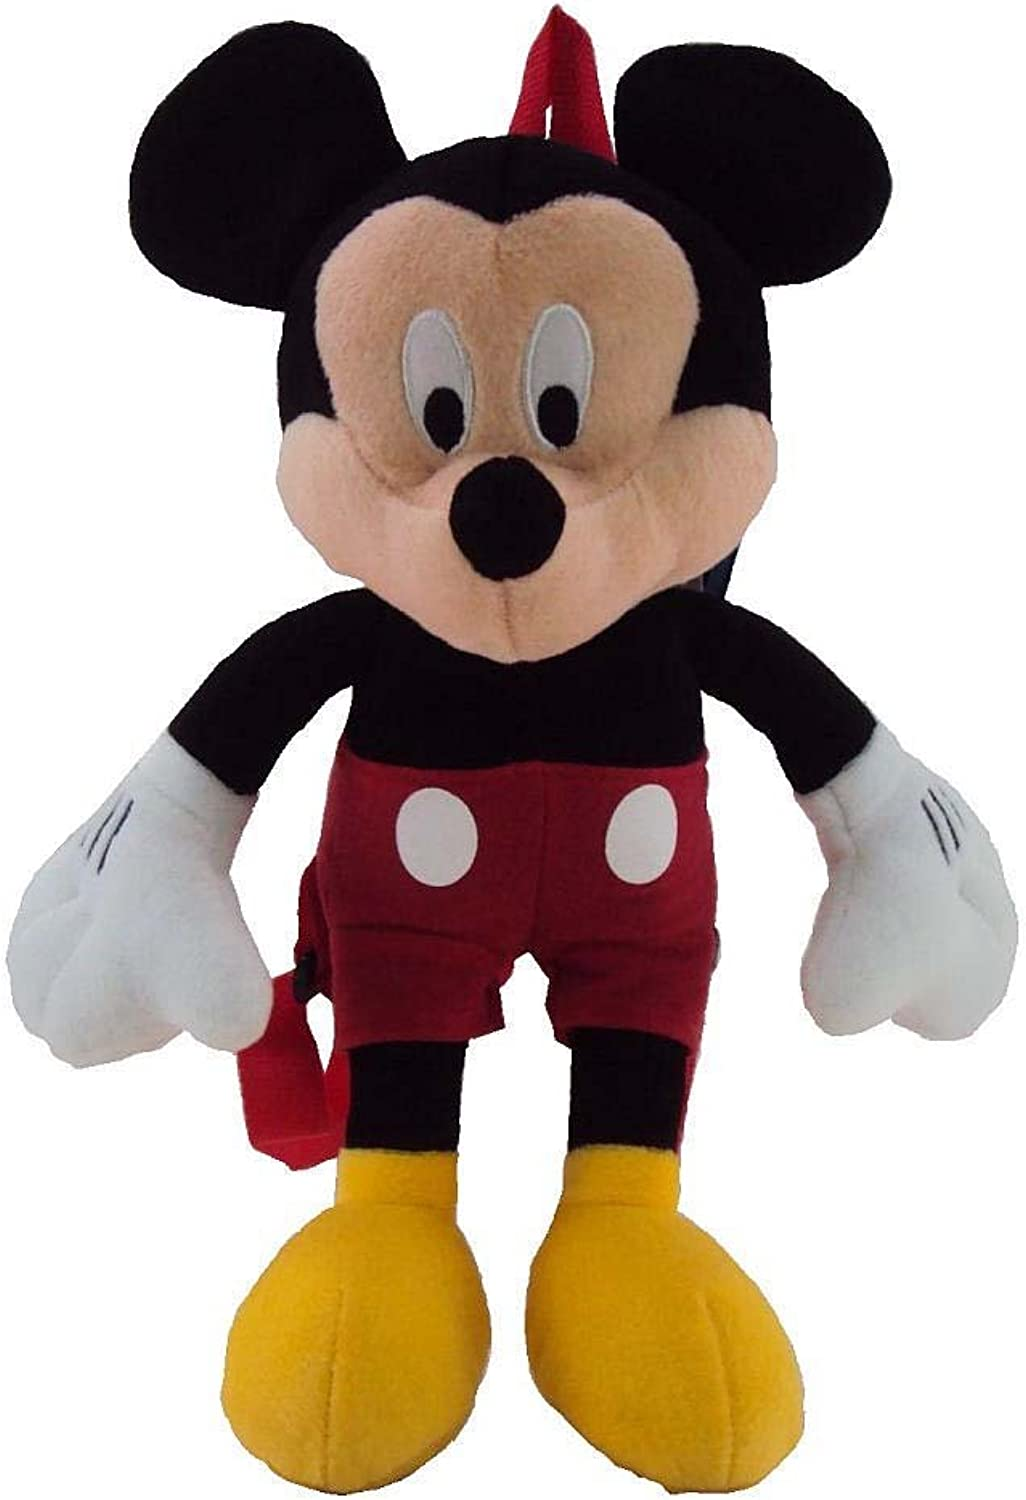 Disney Disney Disney Mickey Mouse Plush Backpack [Toy